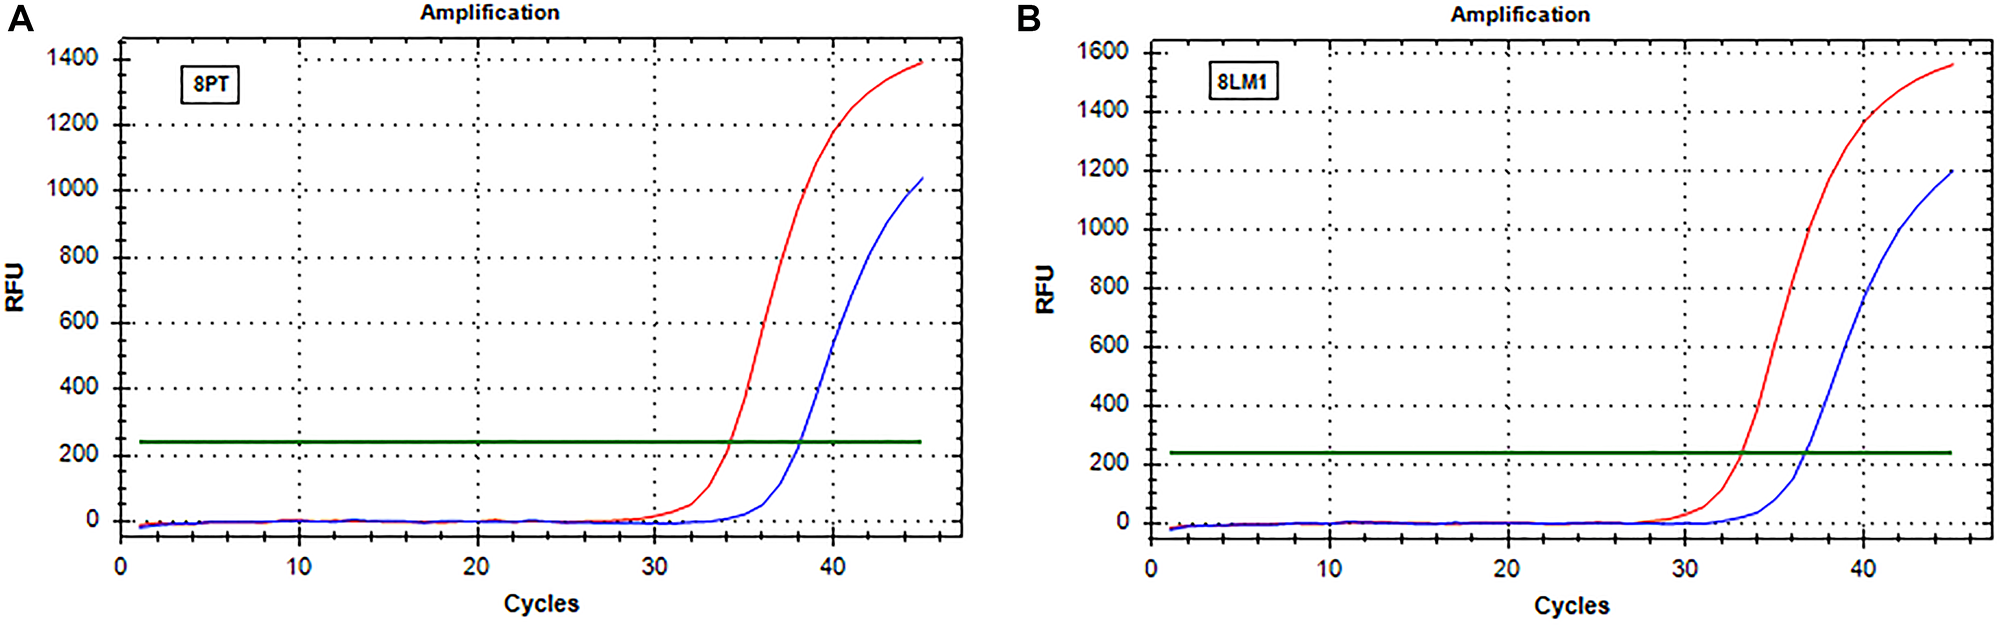 Real-time PCR (SensiScreen™) amplification curves of patient 8 (group 2).